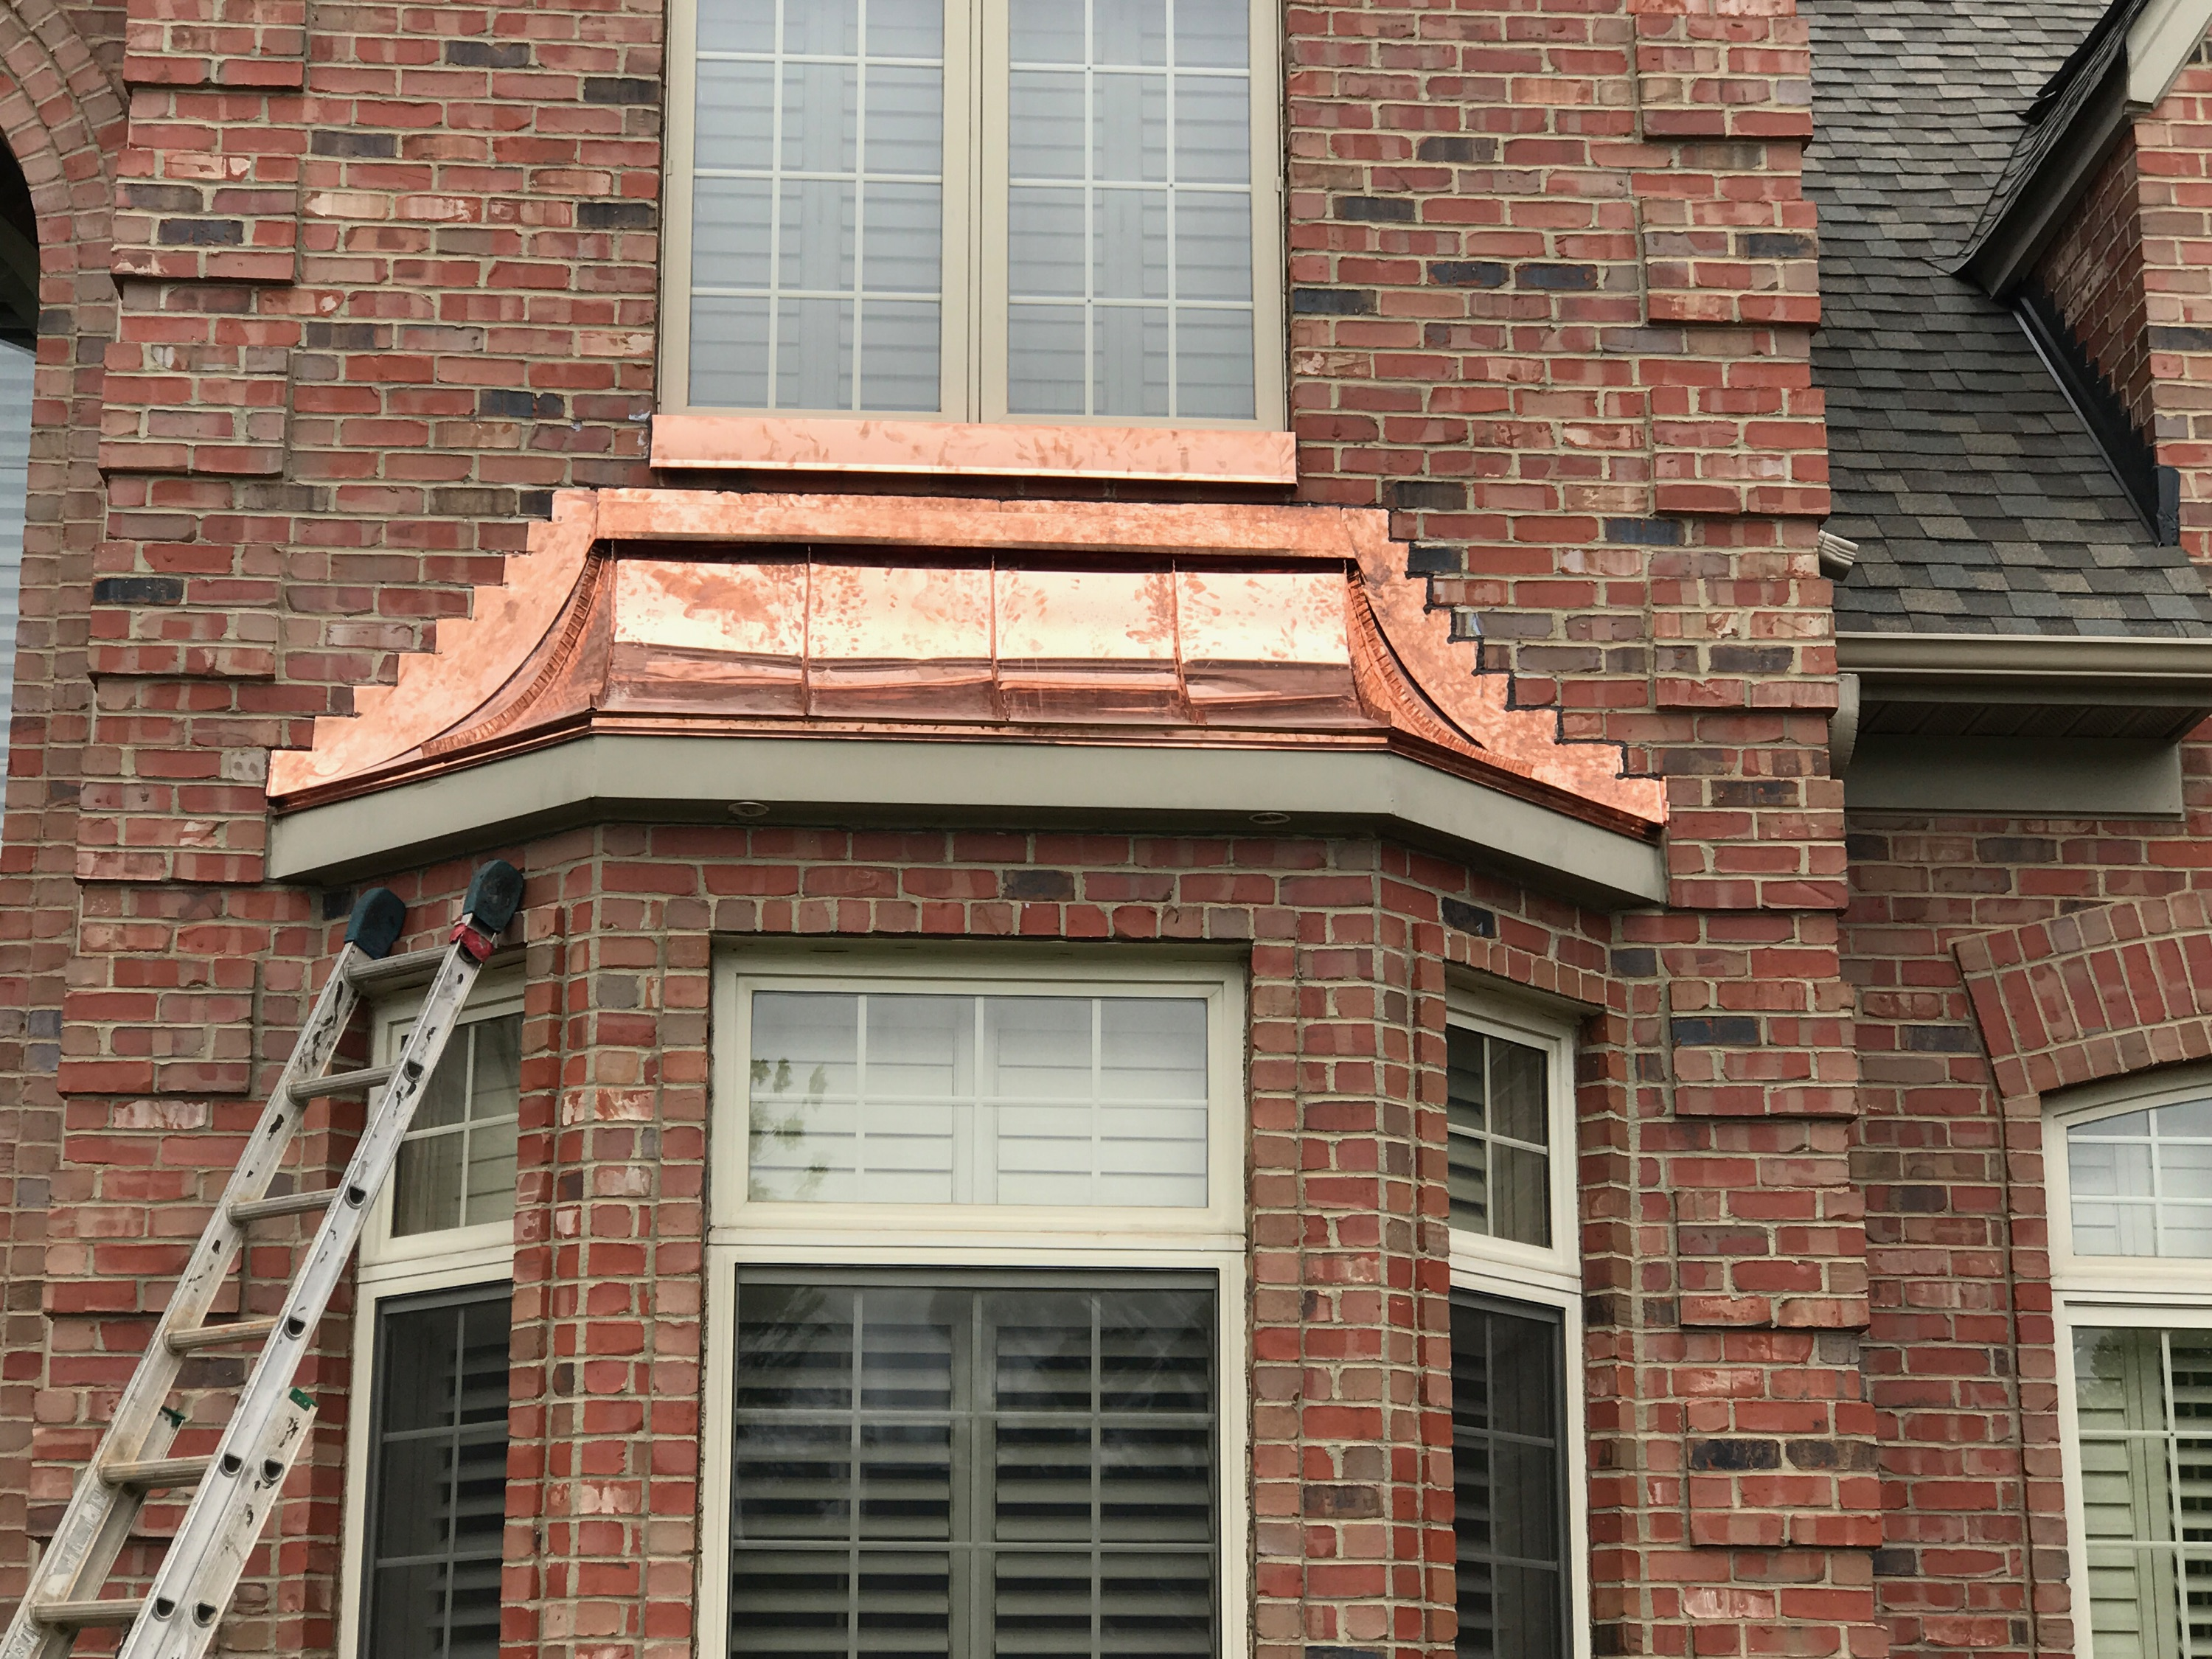 Radius Copper Bay Window